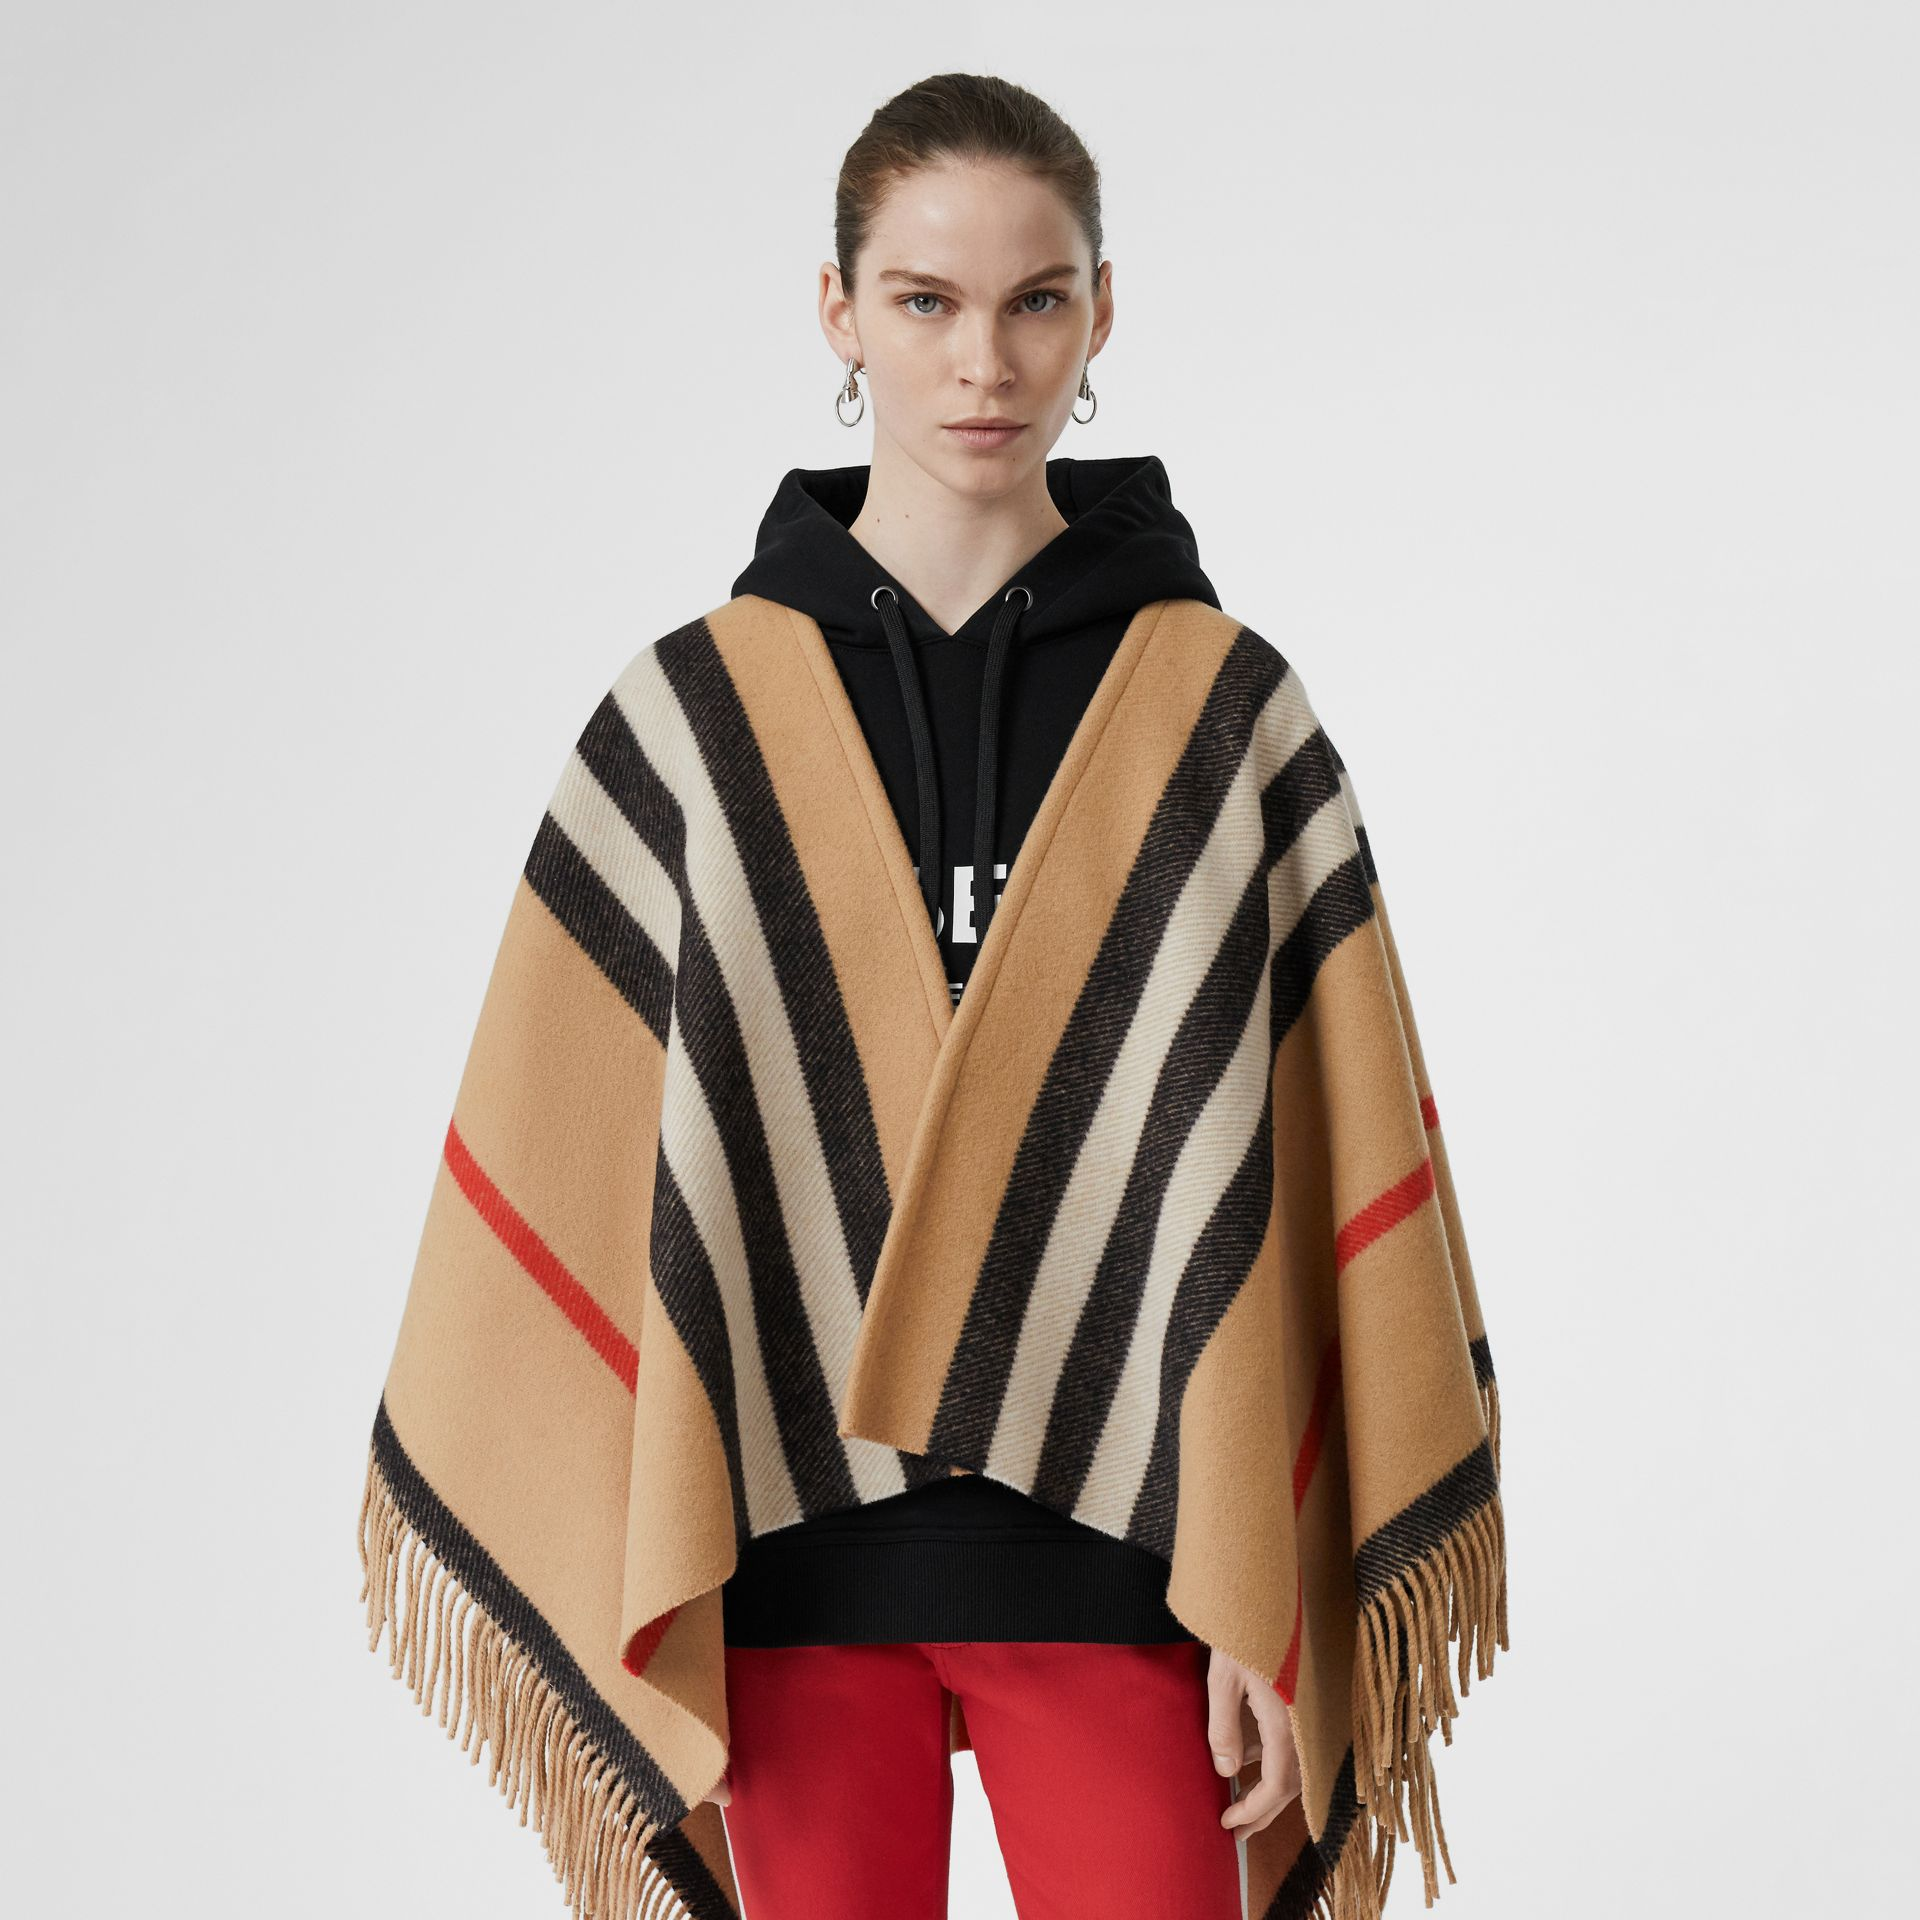 Striped Wool Cape in Camel - Women | Burberry Australia - gallery image 6